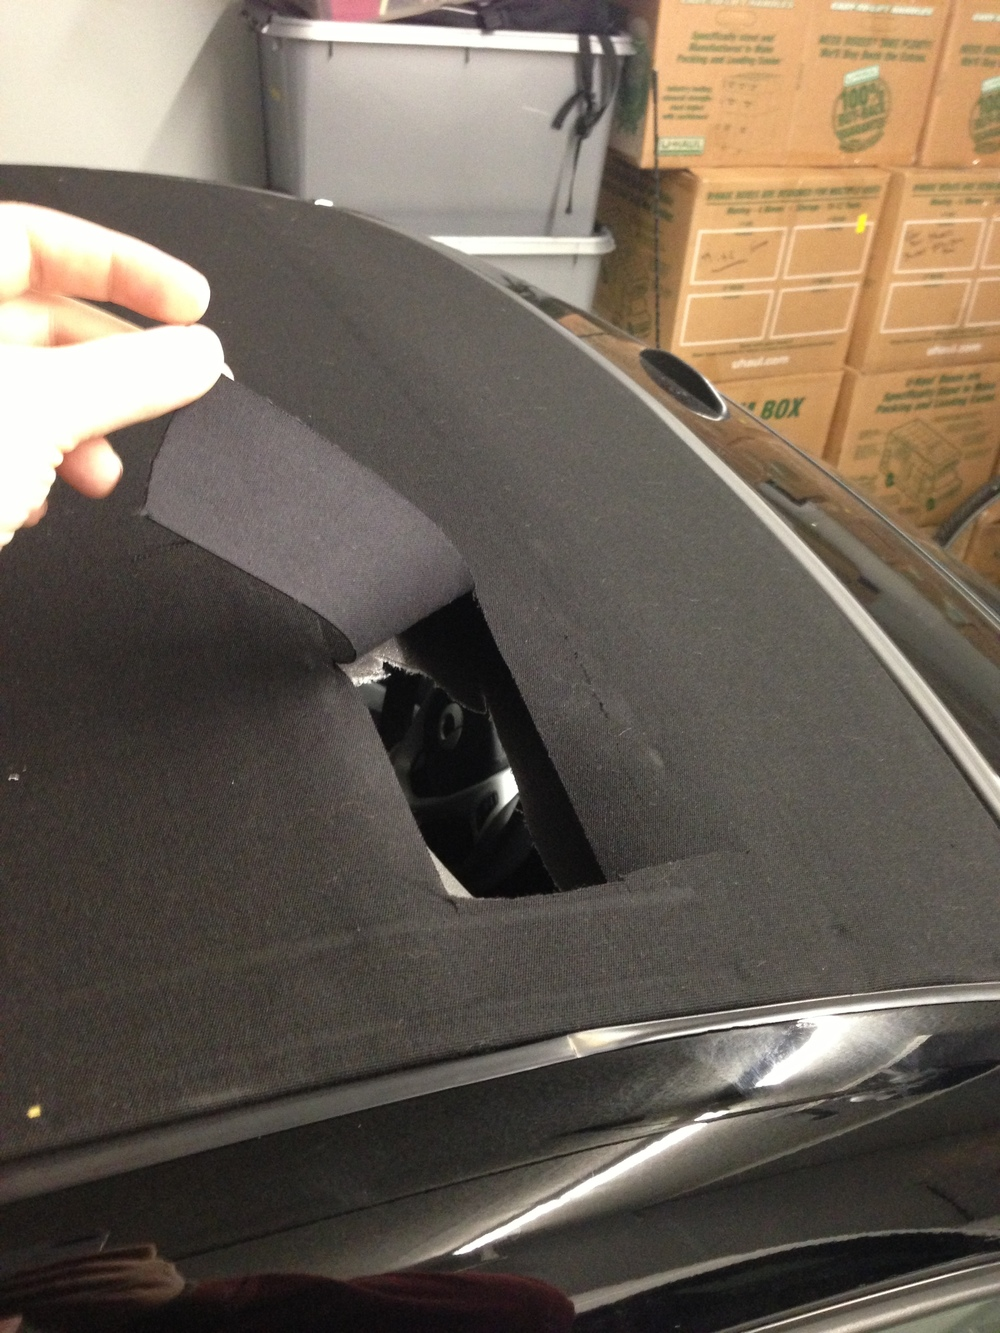 The hole thieves cut into our convertible.